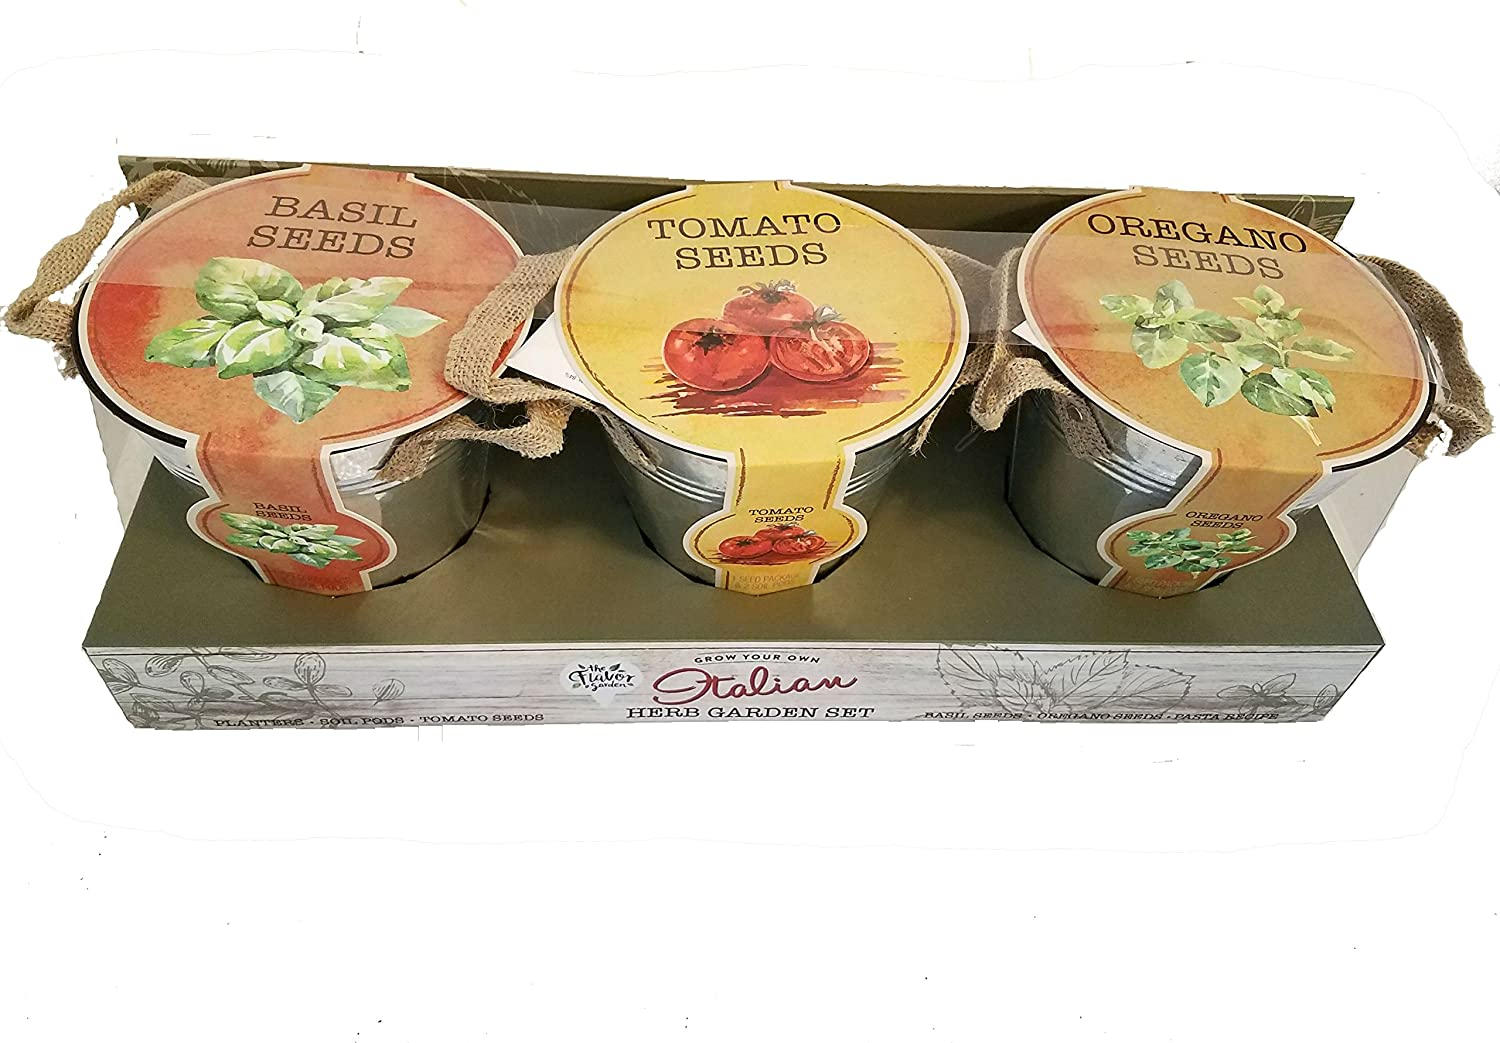 Italian Herb Garden Set Includes 3 Tin Buckets Planters, Basil, Oregano, and Tomato Seeds with Soil Pods. By Modern Gourmet Foods